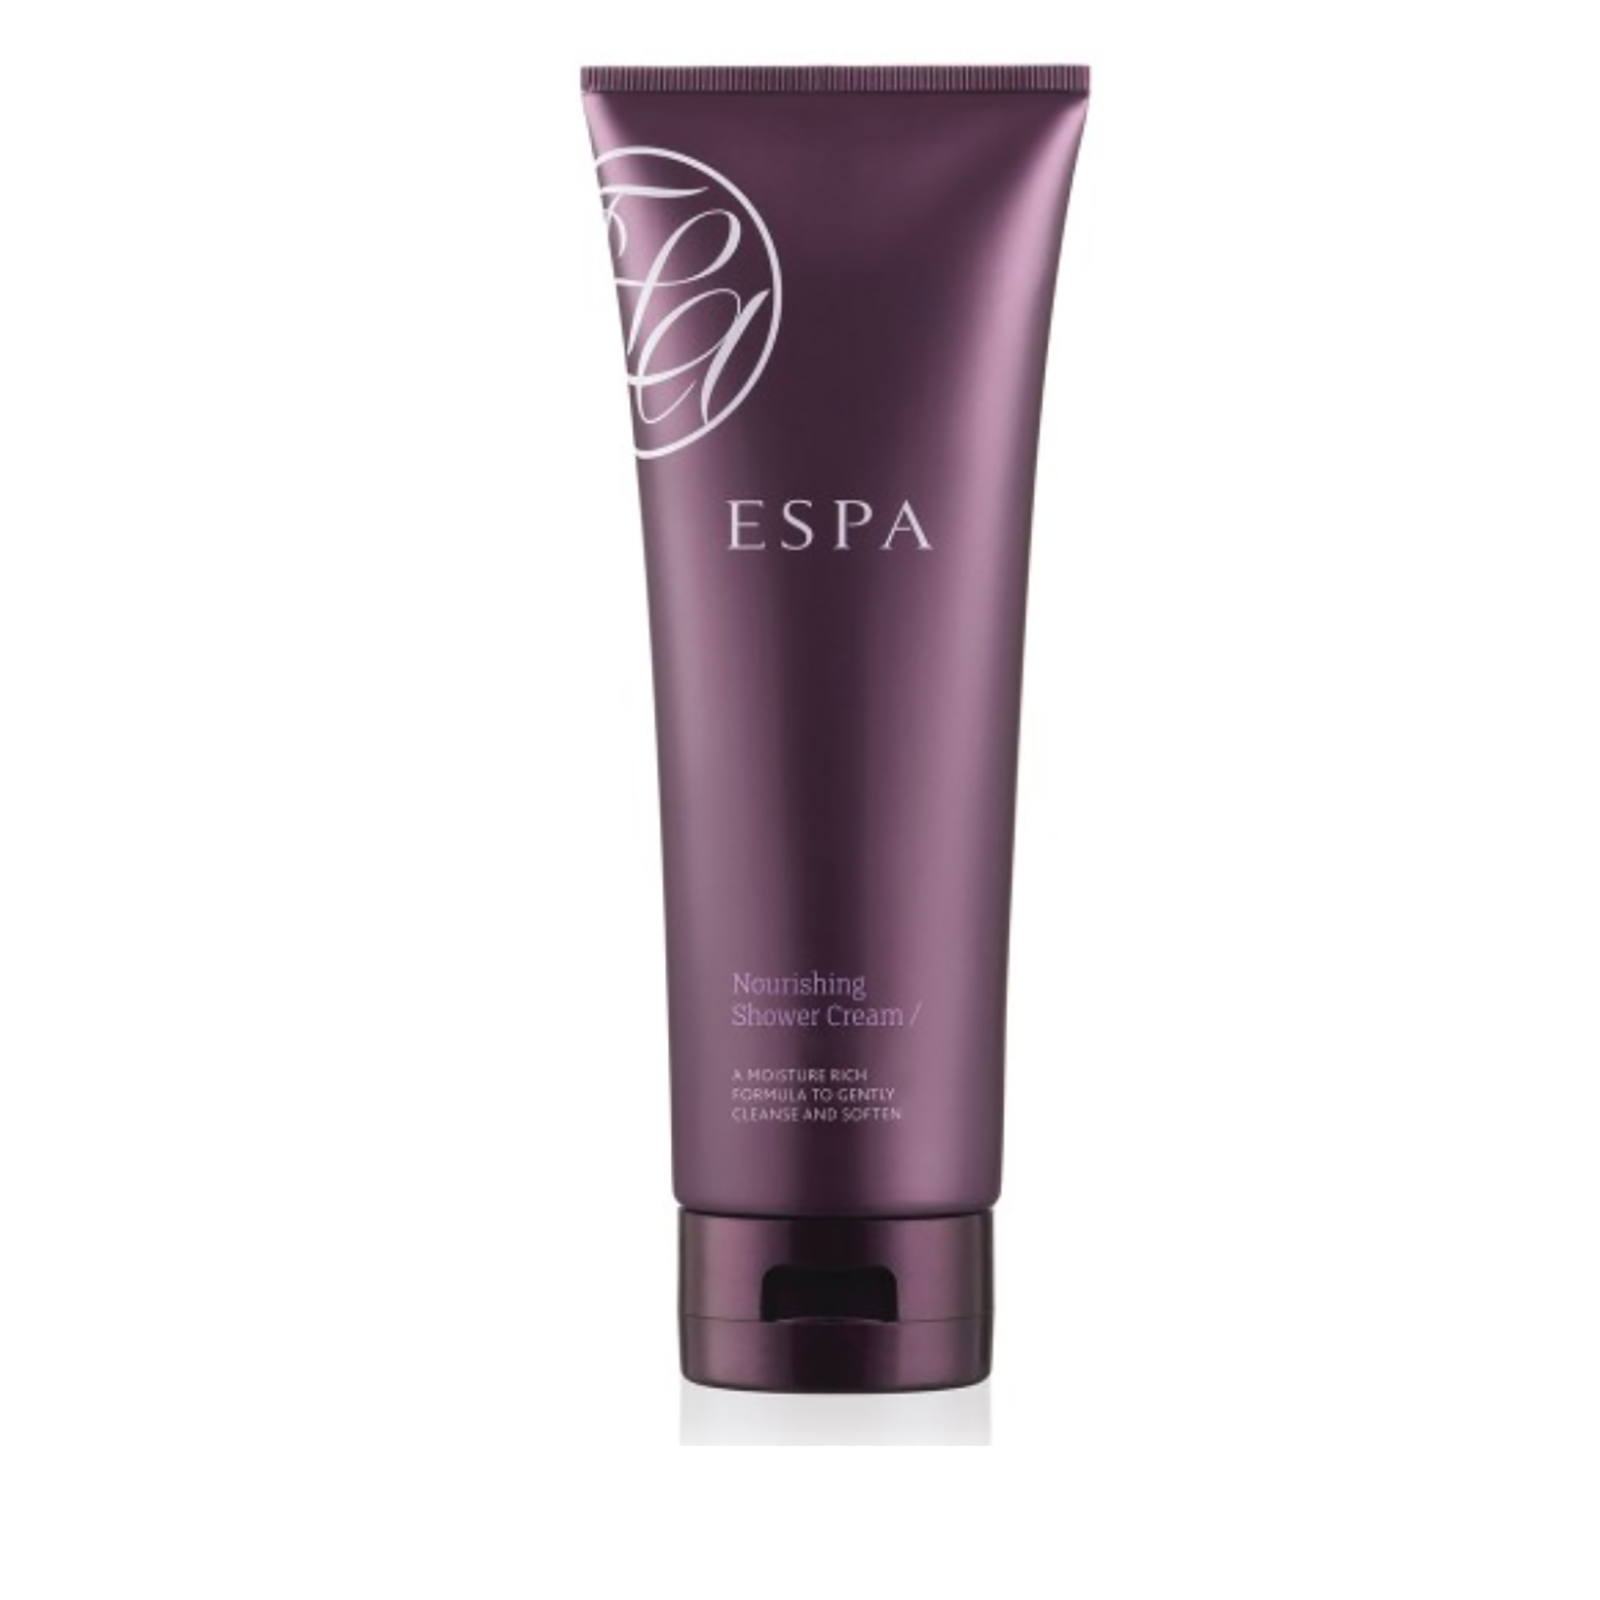 ESPA Nourishing Shower Cream (200ml)